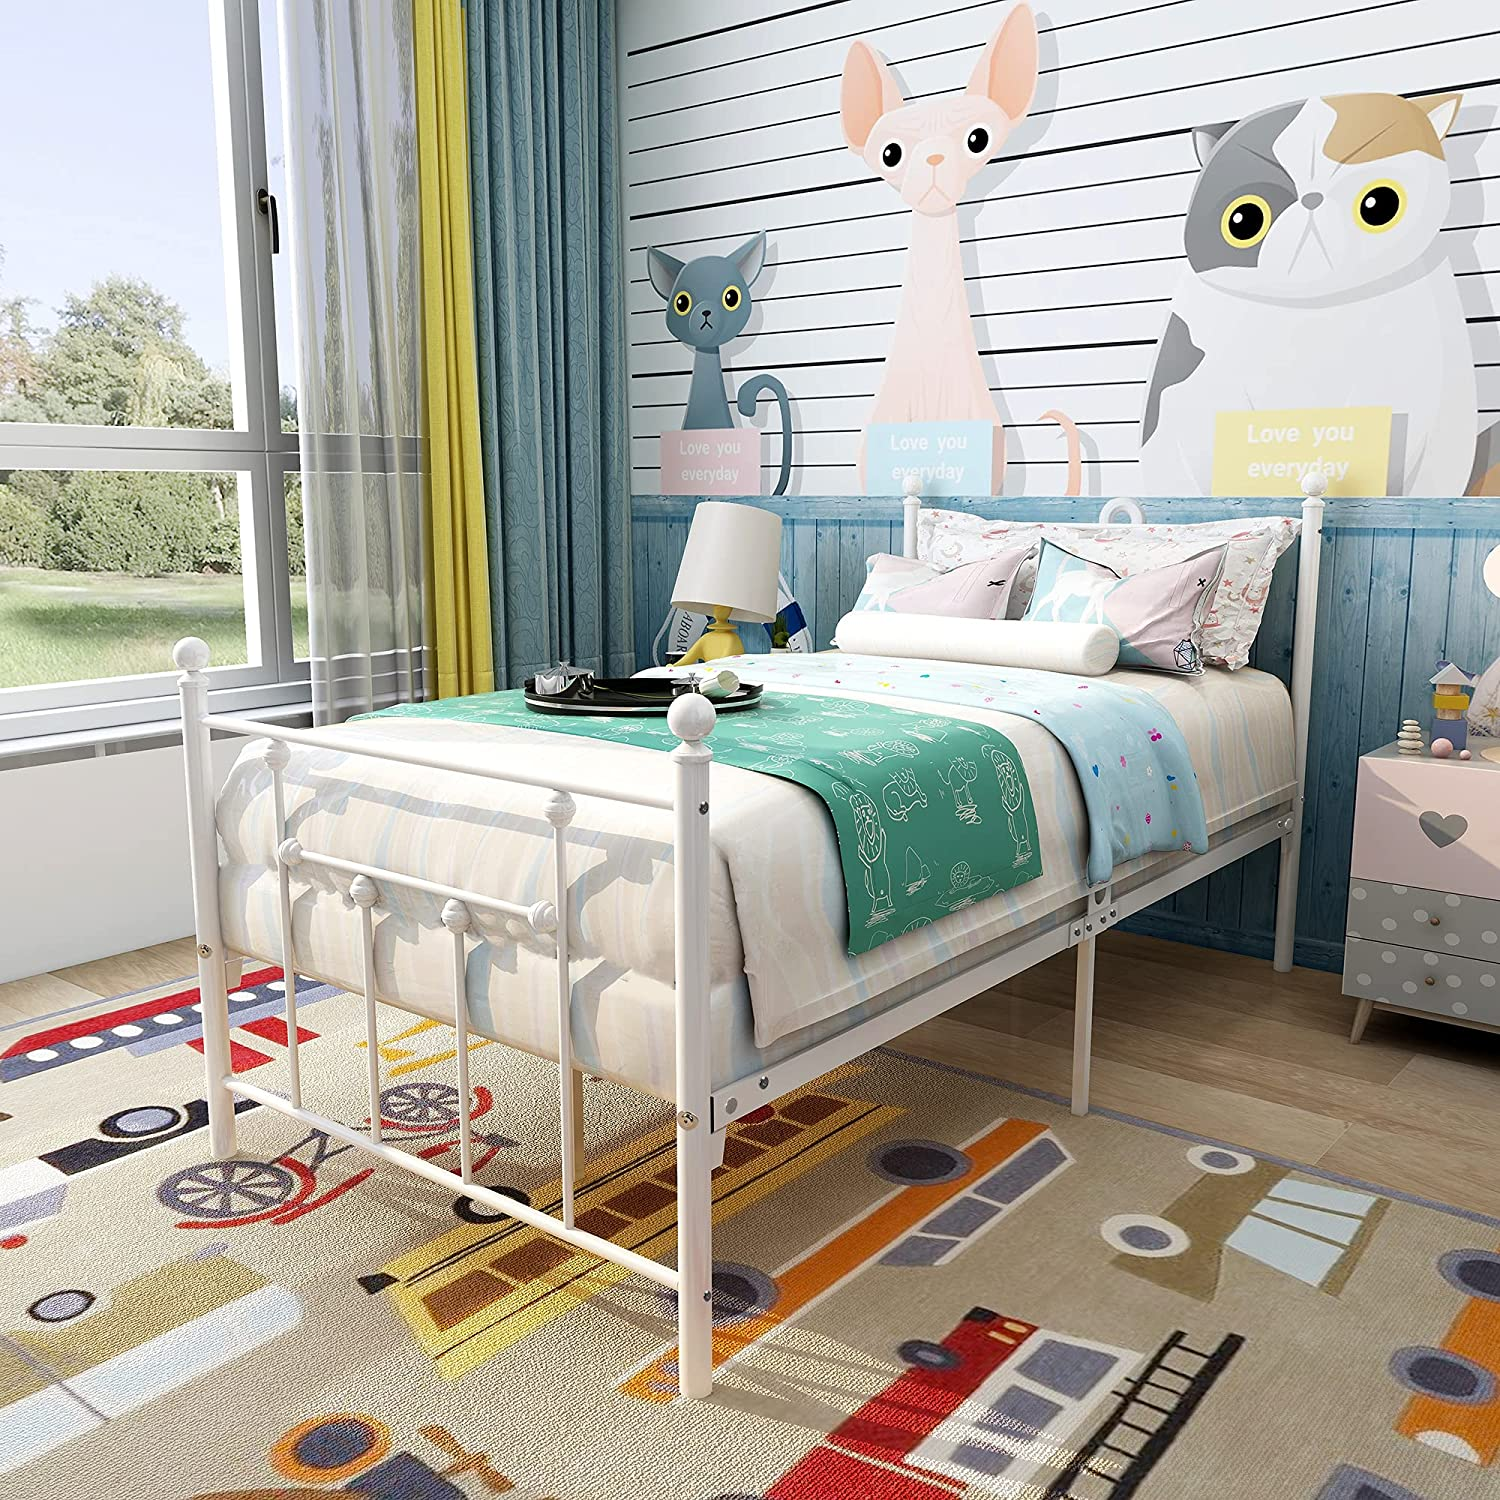 Elegant Home Products Metal Bed Frame Twin Size Platform Foundation with Headboard and Footboard Heavy Duty Steel Slabs No Box Spring Needed,White